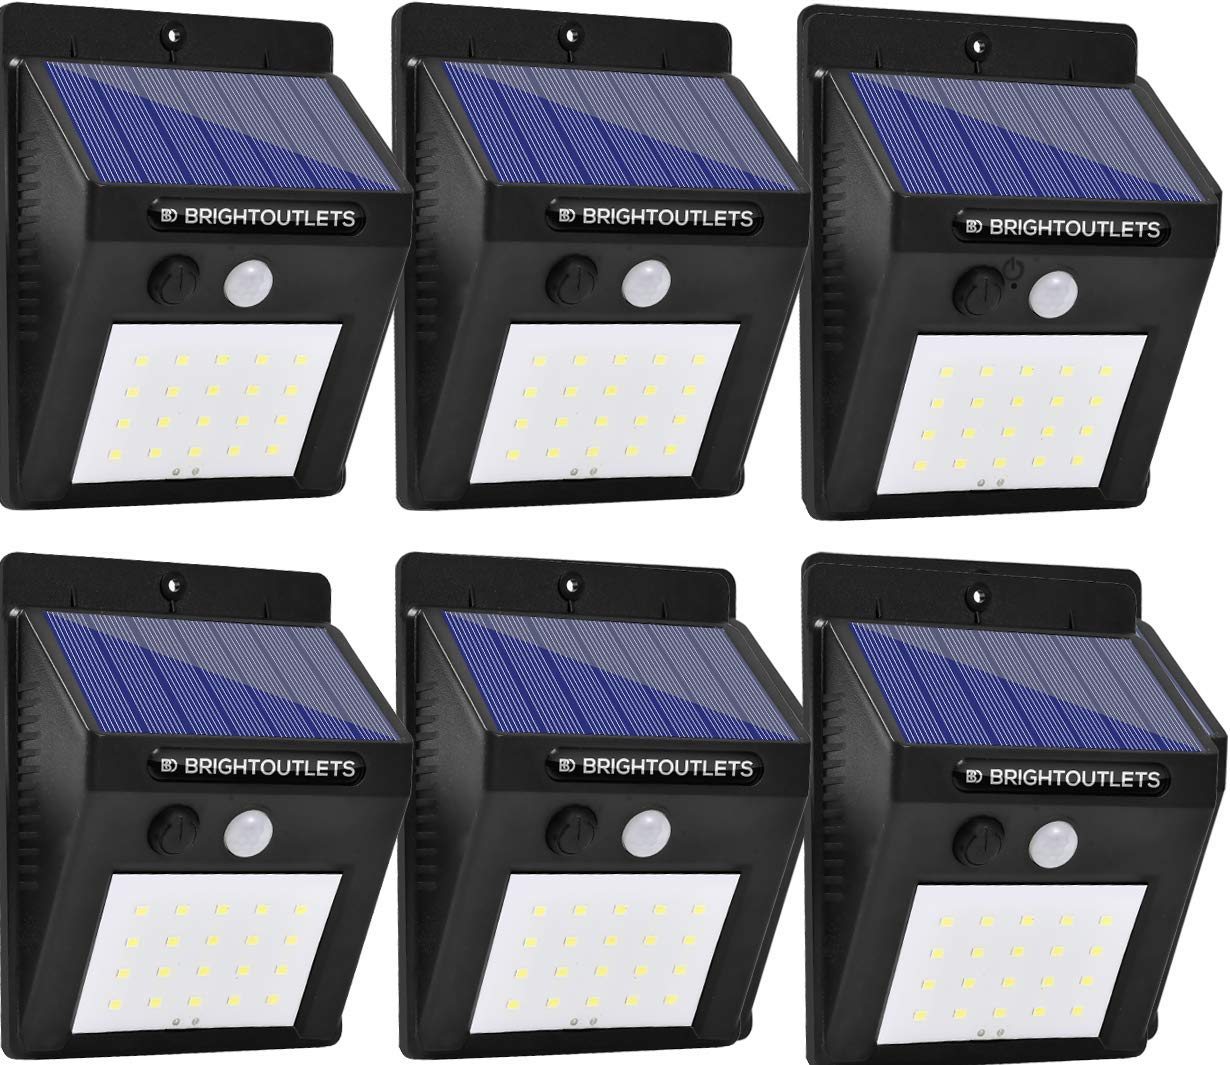 Solar Lights Outdoor Motion Sensor - Light 20 LED Flood Lights for Home Security, Patio, Wall, Pathway, Garden, Yard - Bright Waterproof Lighting with Motion Activated Auto On/Off (6-Pack)